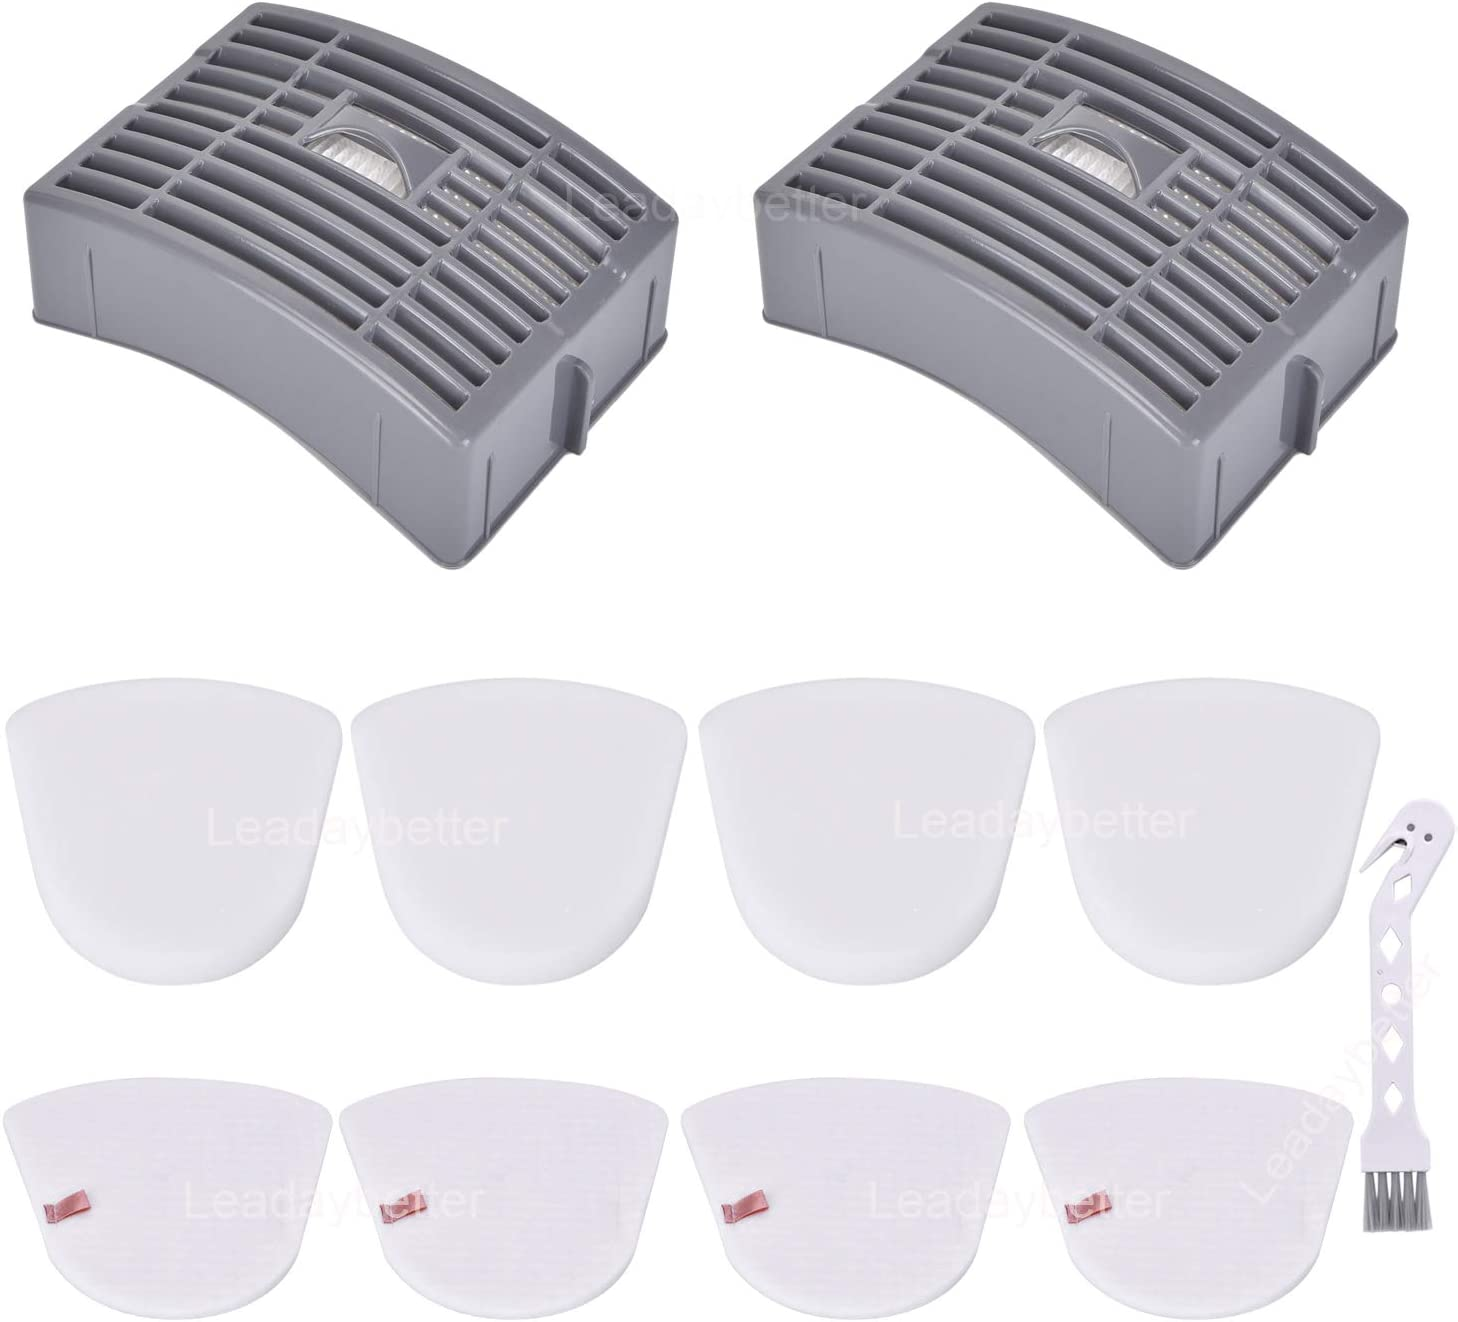 2 HEPA + 4 Foam & Felt Filters for Shark Powered Lift-Away DLX NV581,581Q, Compare to Part # XFFT580 Replacement Filter